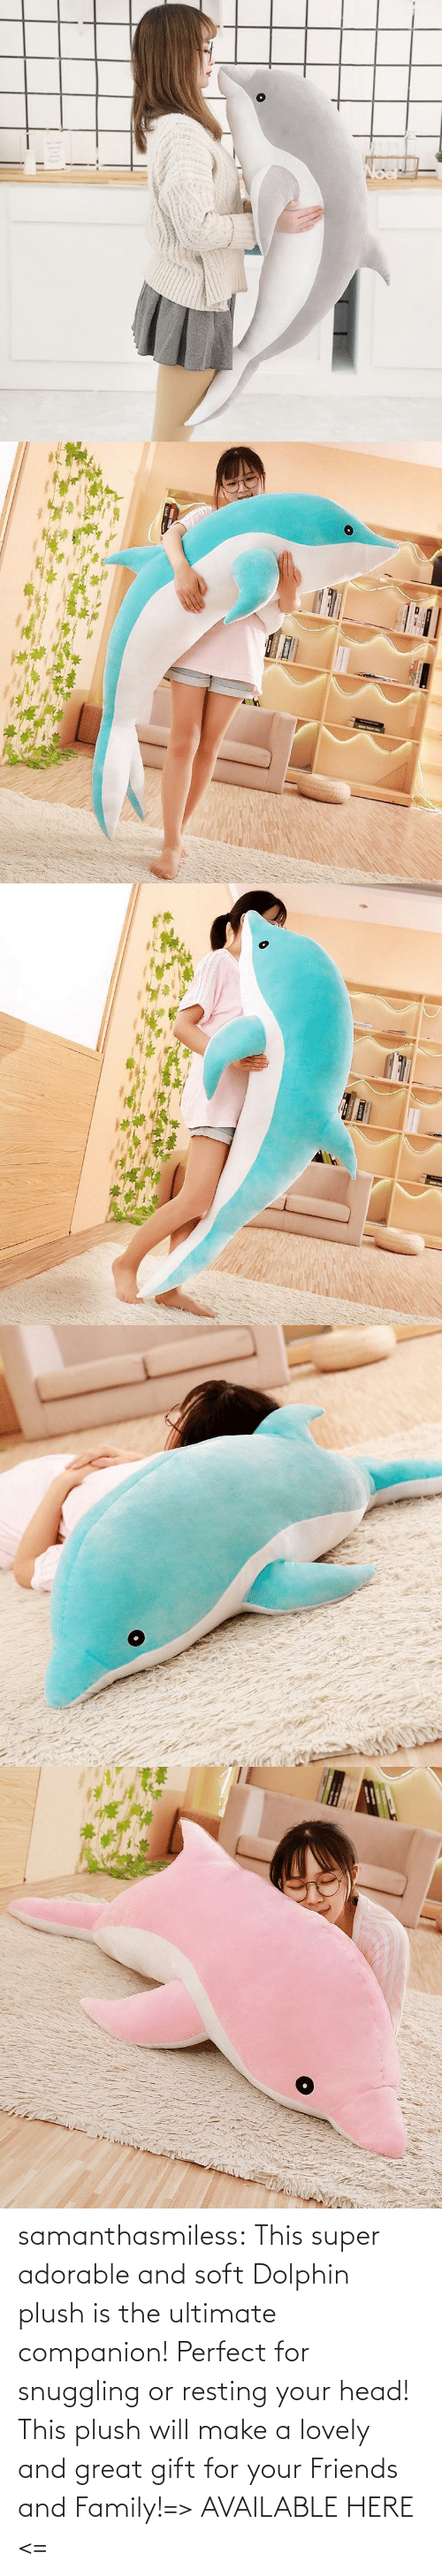 perfect: samanthasmiless:  This super adorable and soft Dolphin plush is the ultimate companion! Perfect for snuggling or resting your head! This plush will make a lovely and great gift for your Friends and Family!=> AVAILABLE HERE <=